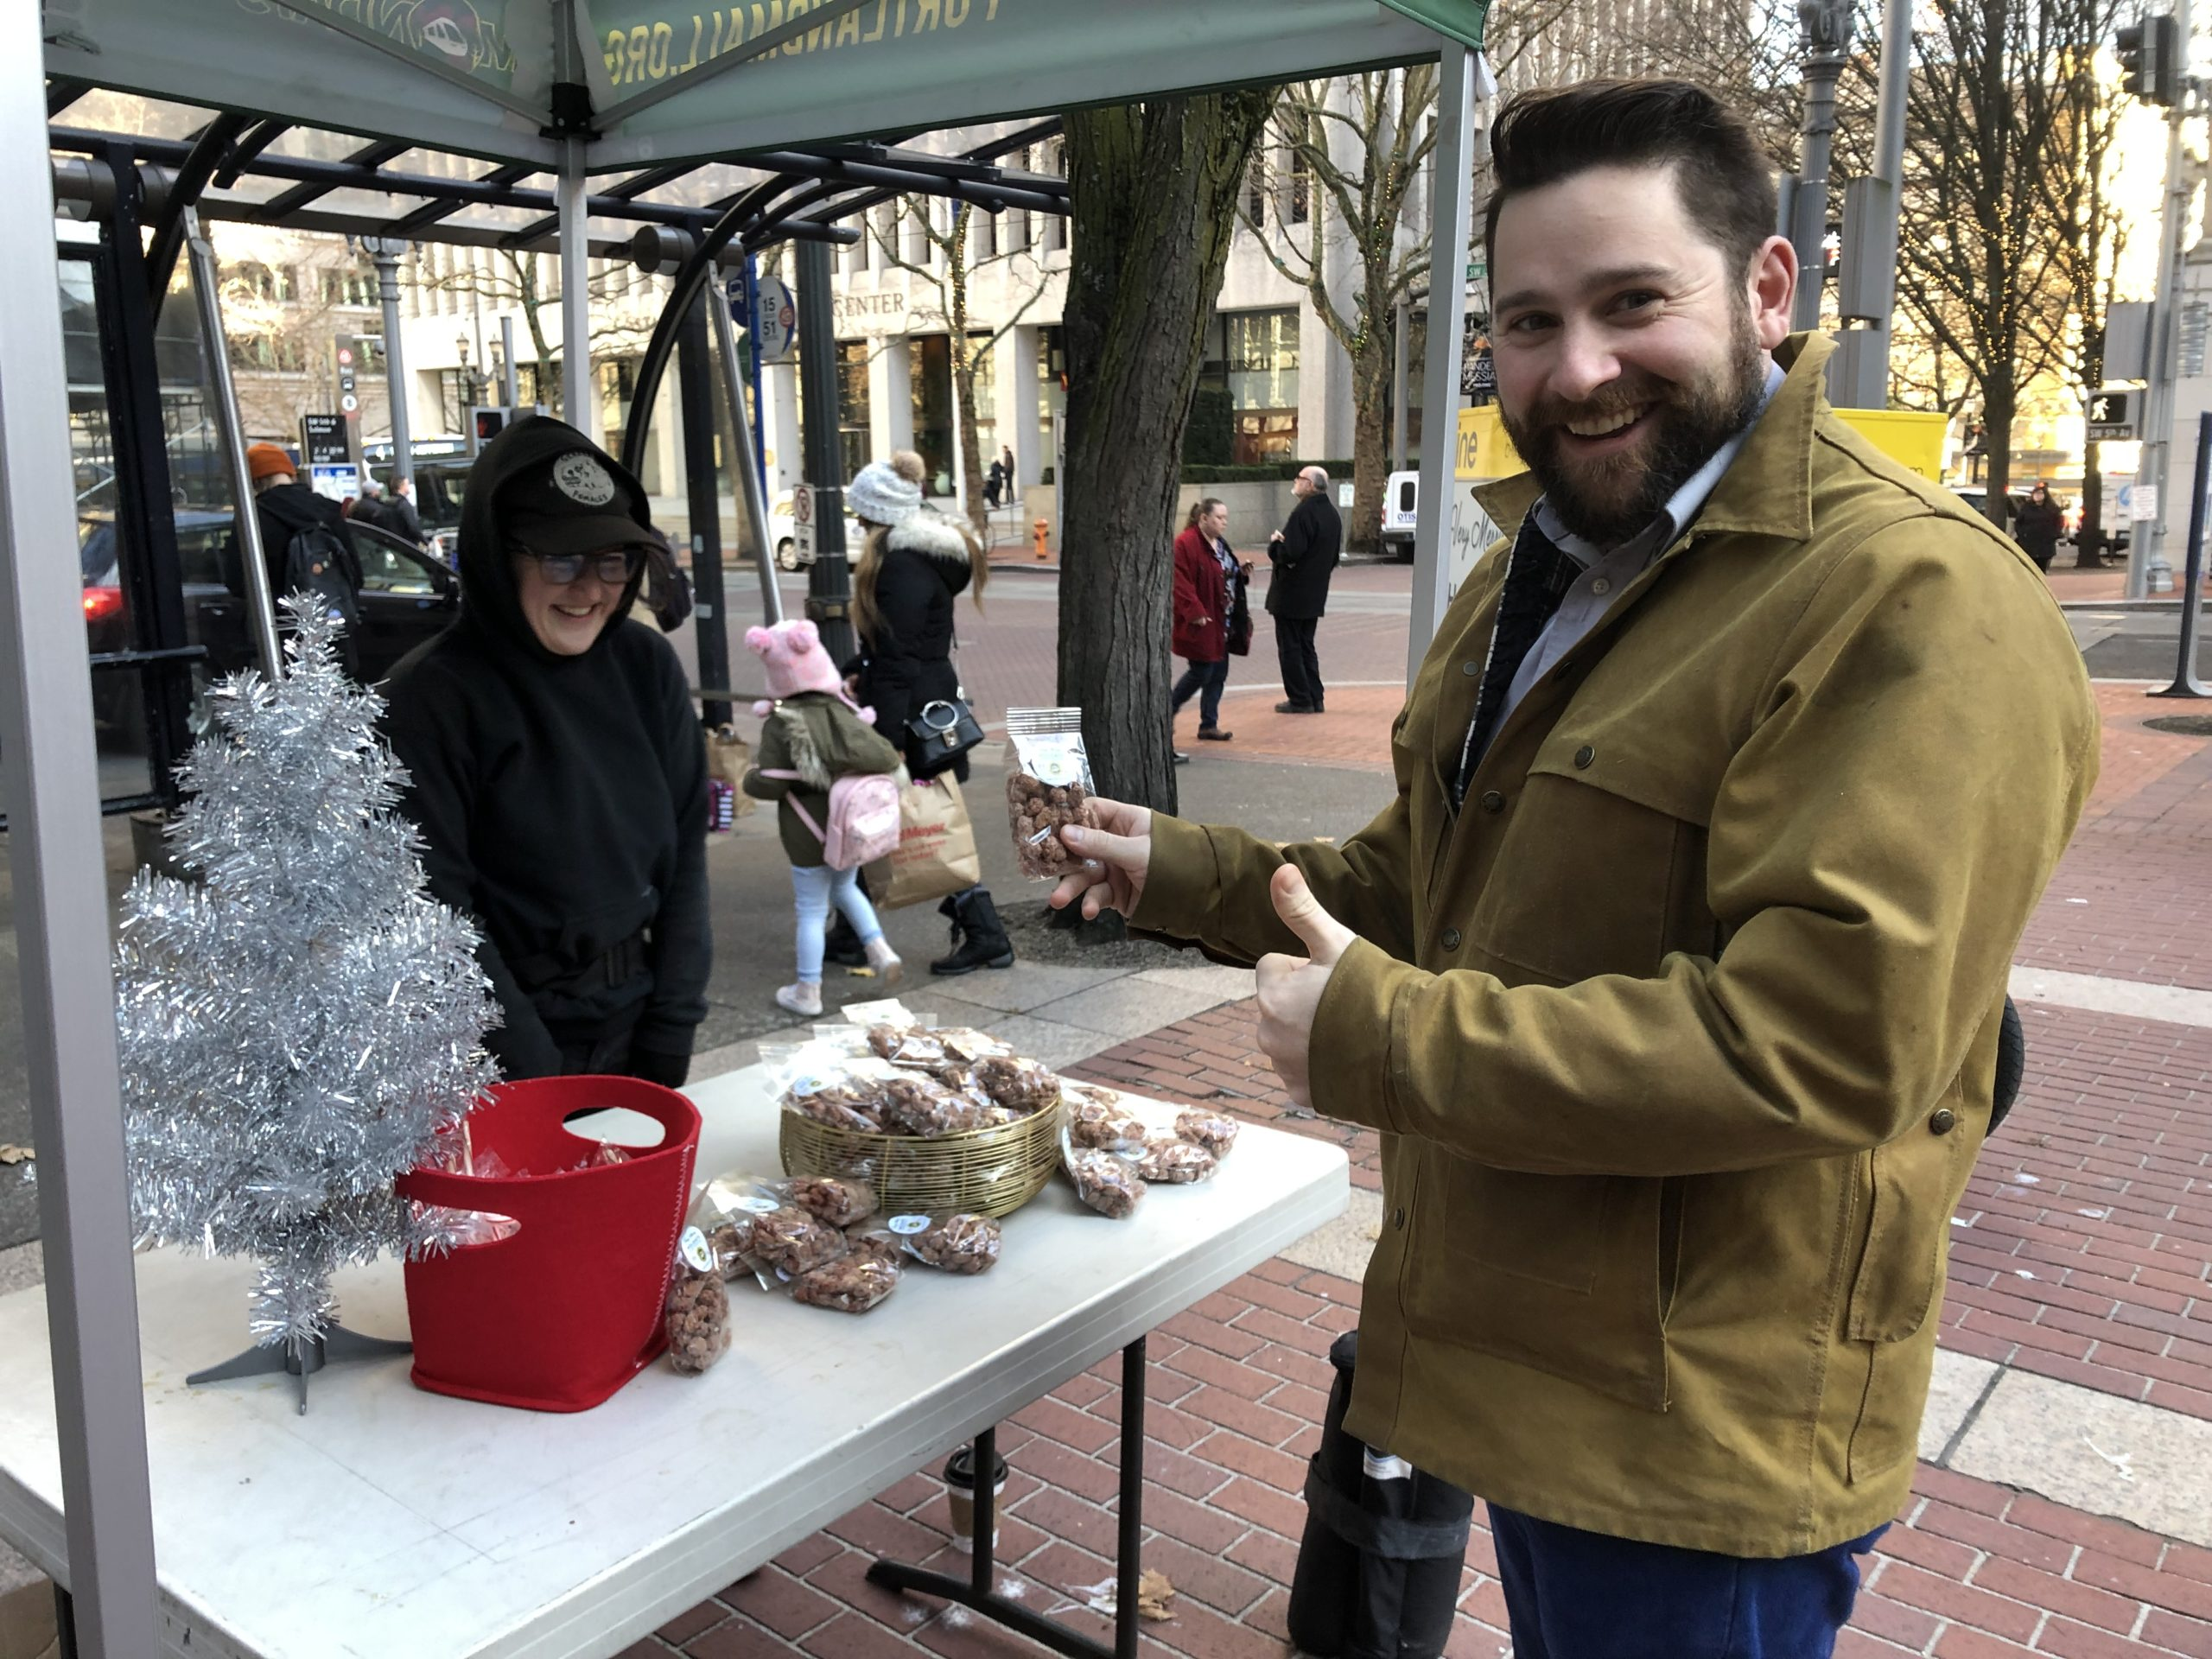 Celebrate the Holidays with Pop-Up events along Portland's Transit Mall!